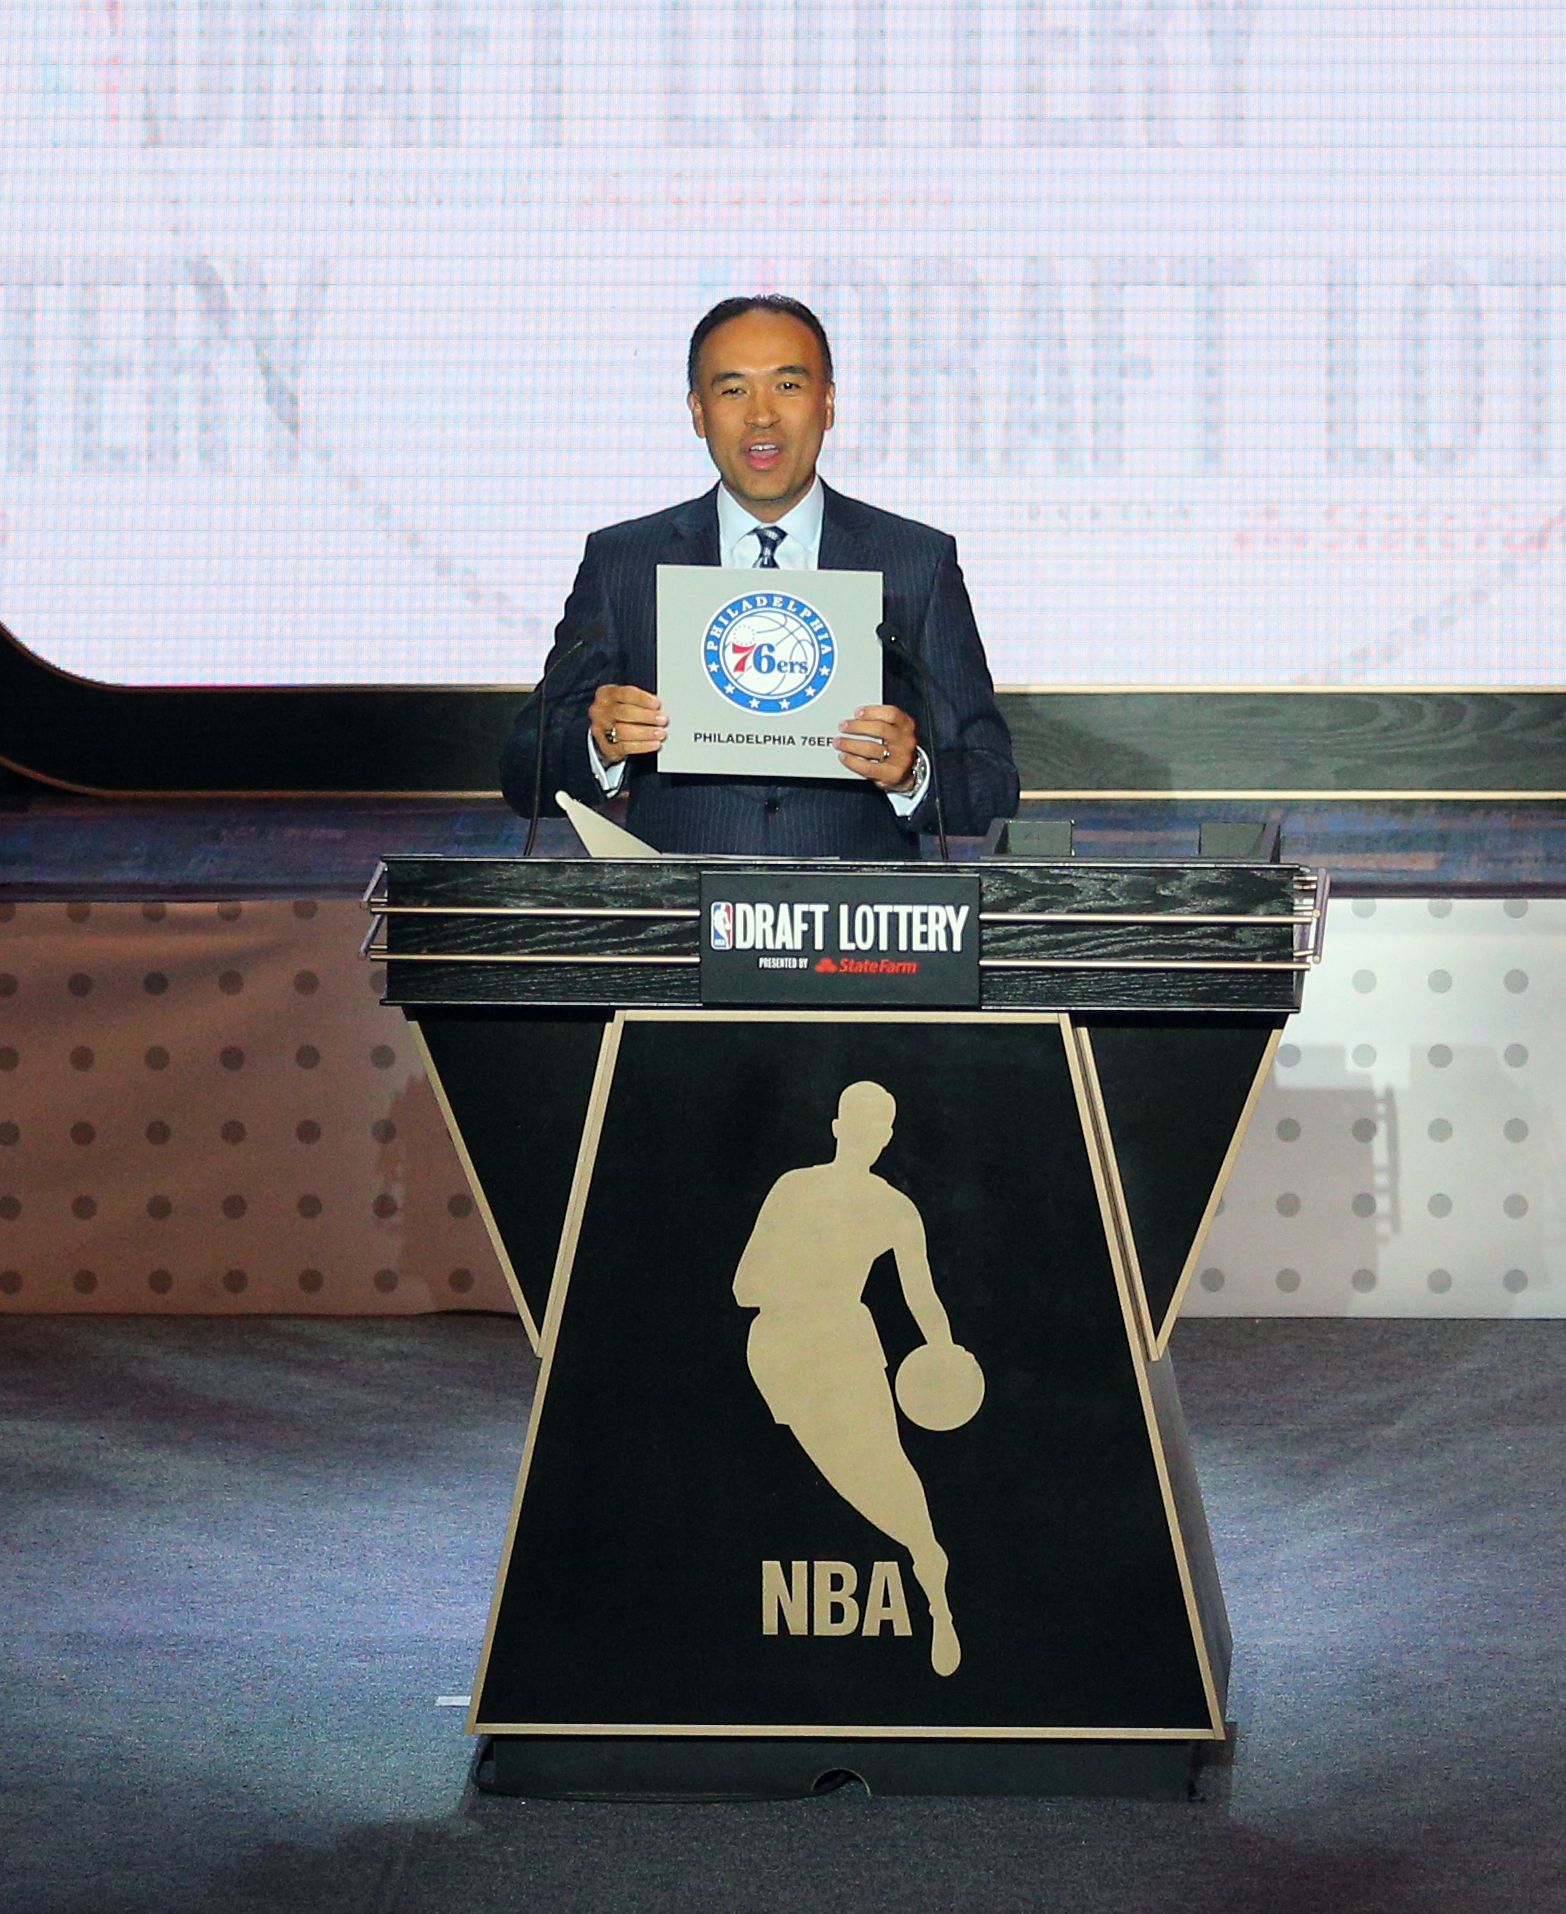 nba draft lottery - photo #48